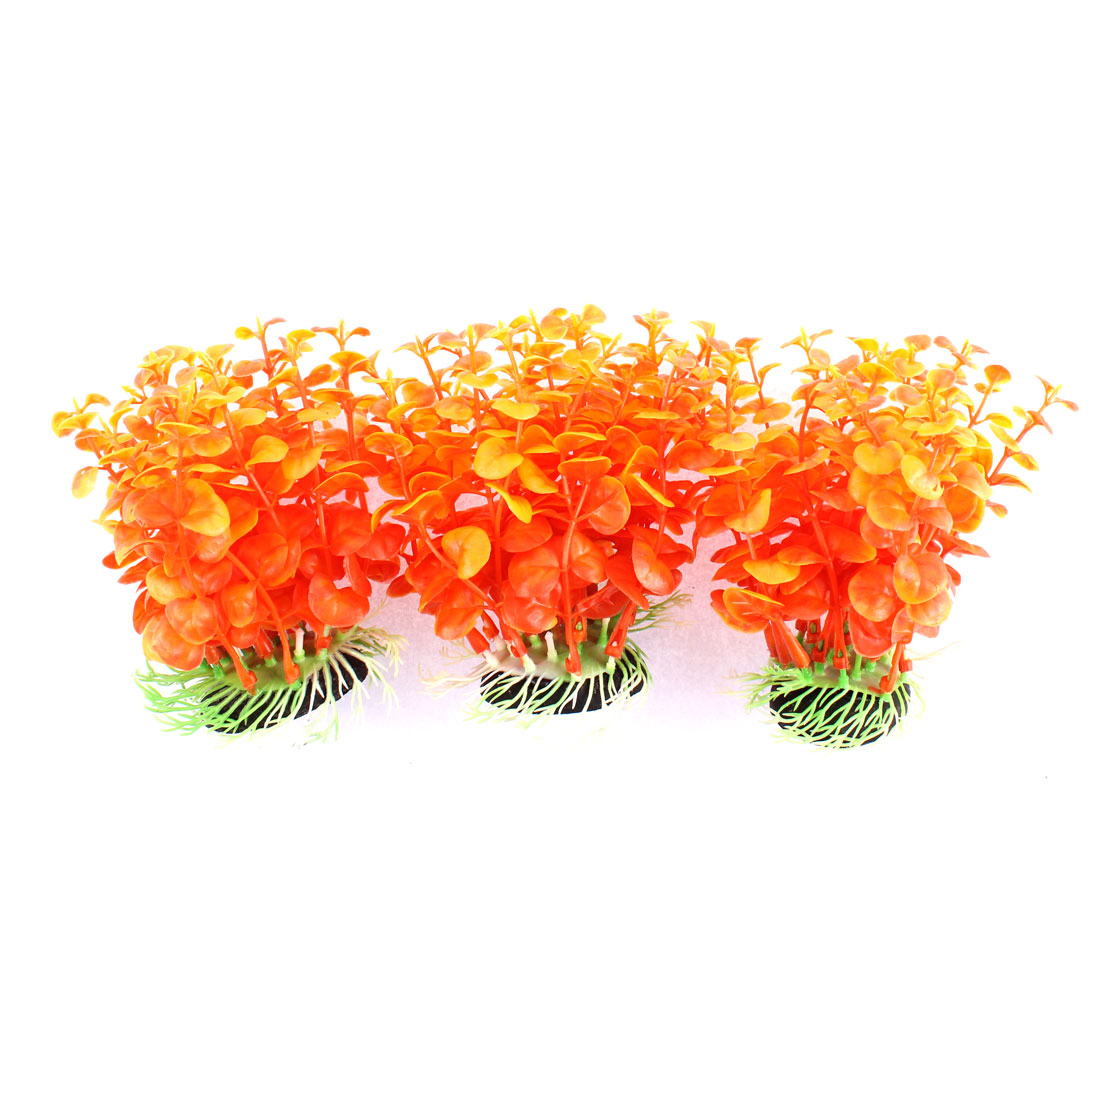 Aquarium Plastic Simulated Water Plant Grass Adorn Orangered 3 Pcs